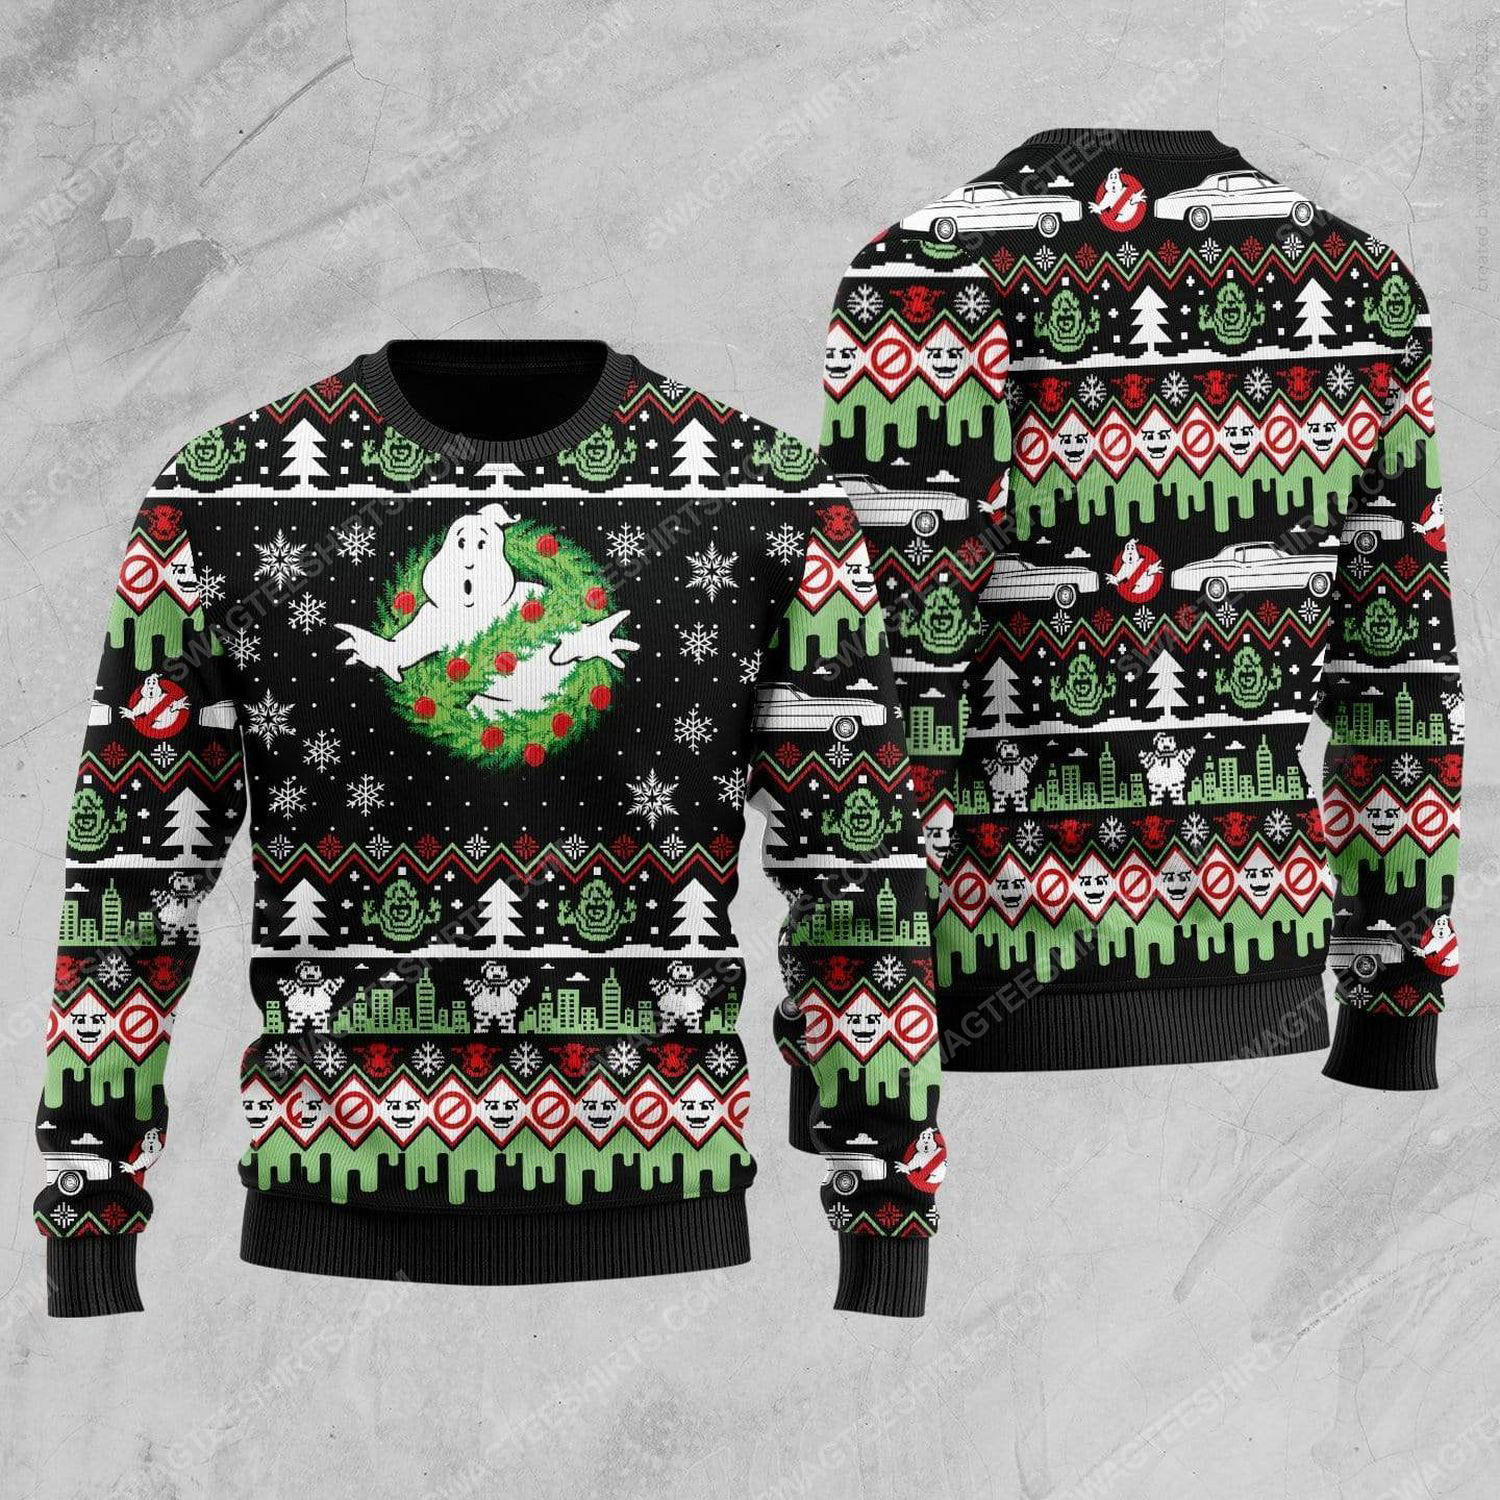 Ghostbusters movie all over print ugly christmas sweater 1